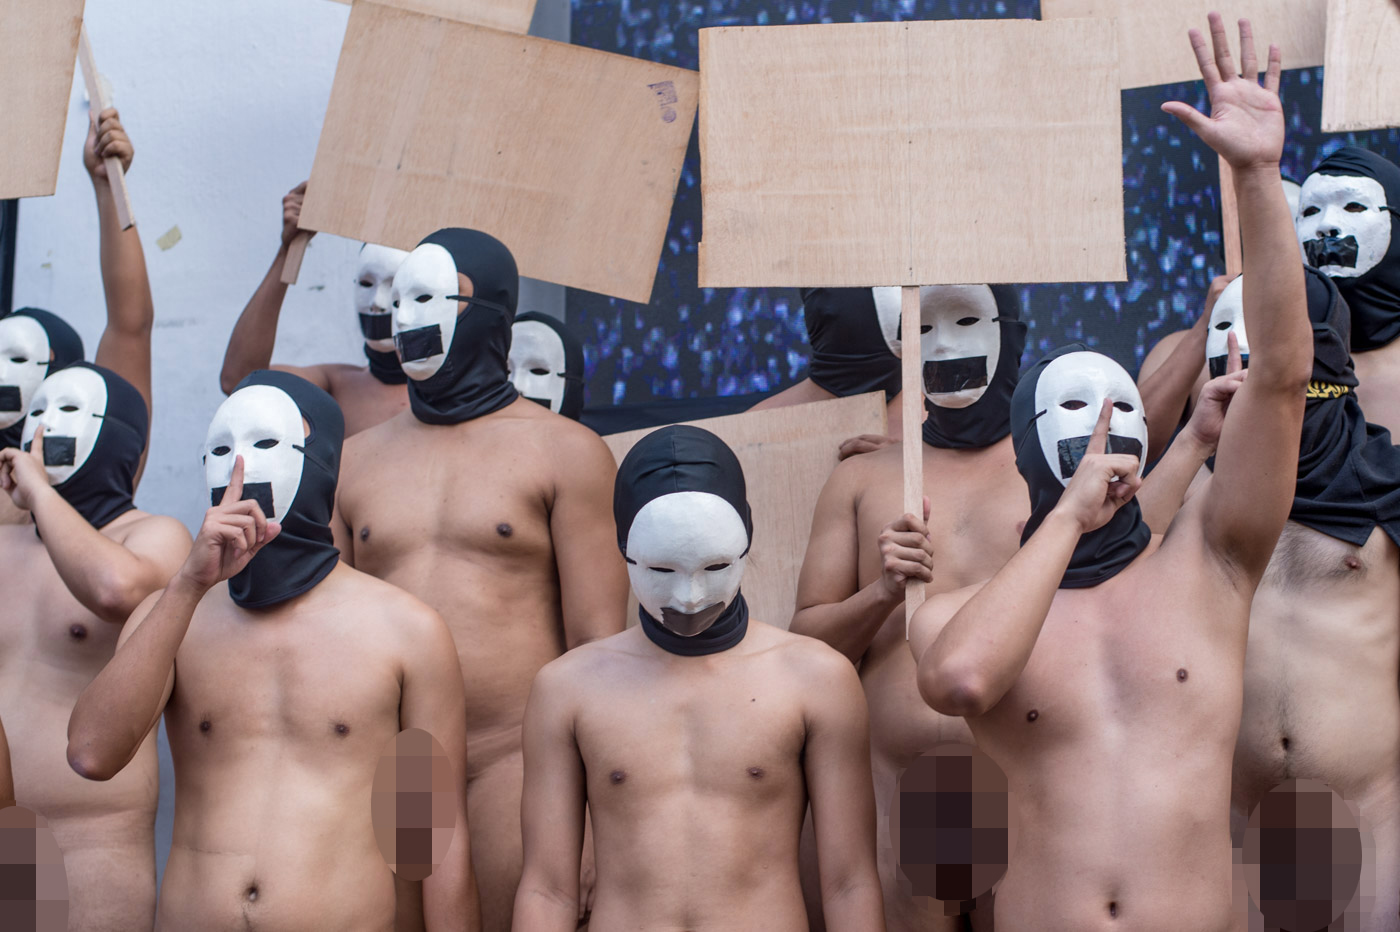 EXPRESSION. Members of the Alpha Phi Omega (APO) fraternity participate in the Oblation Run at University of the Philippines Diliman to uphold freedom of expression and self-determination on February 8, 2019. Photo by Lisa David/Rappler